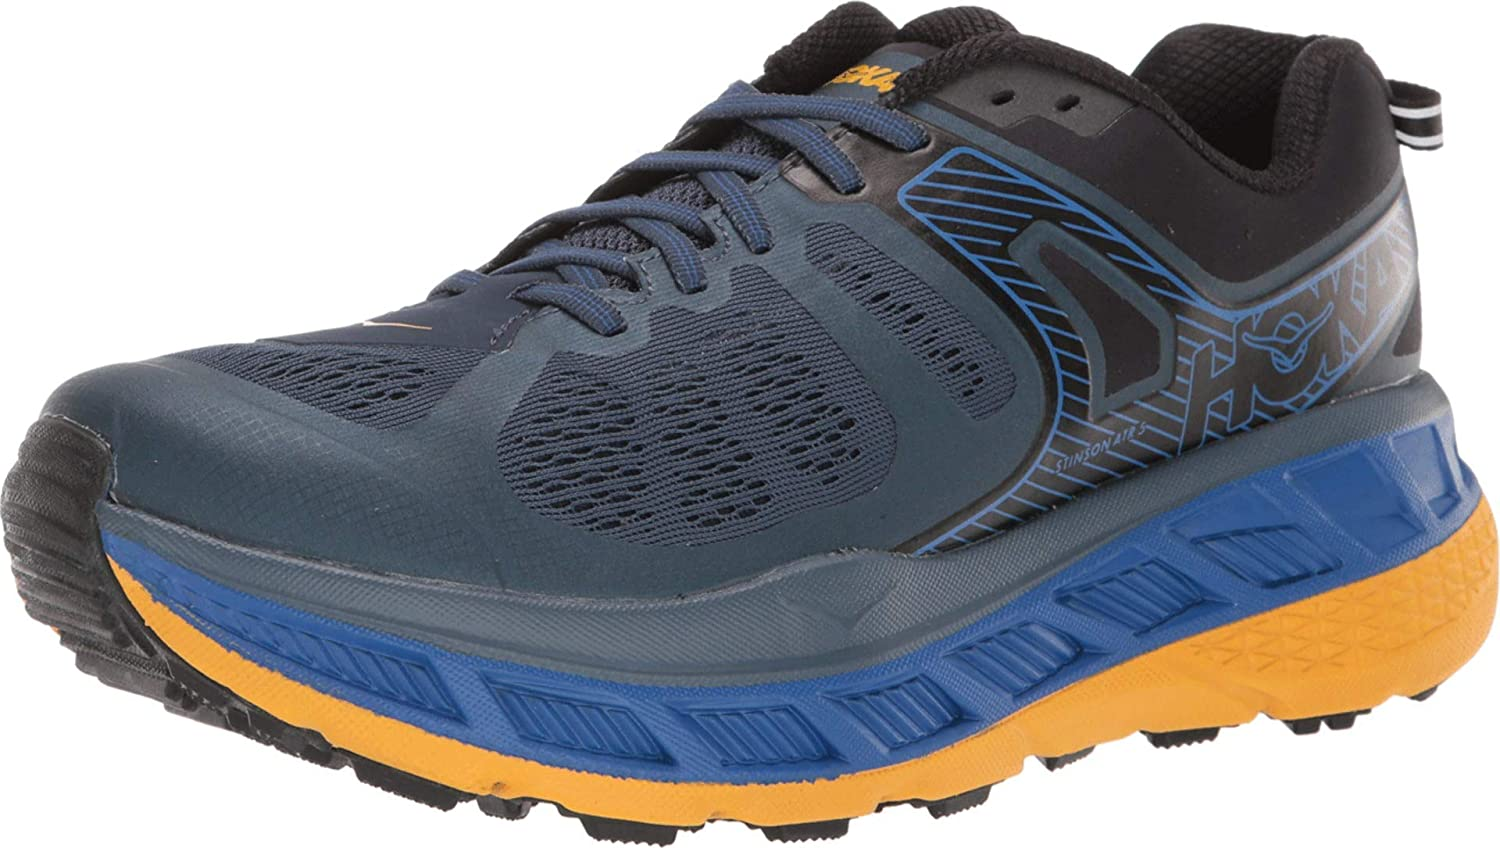 Men's Hoka One One Stinson ATR 4